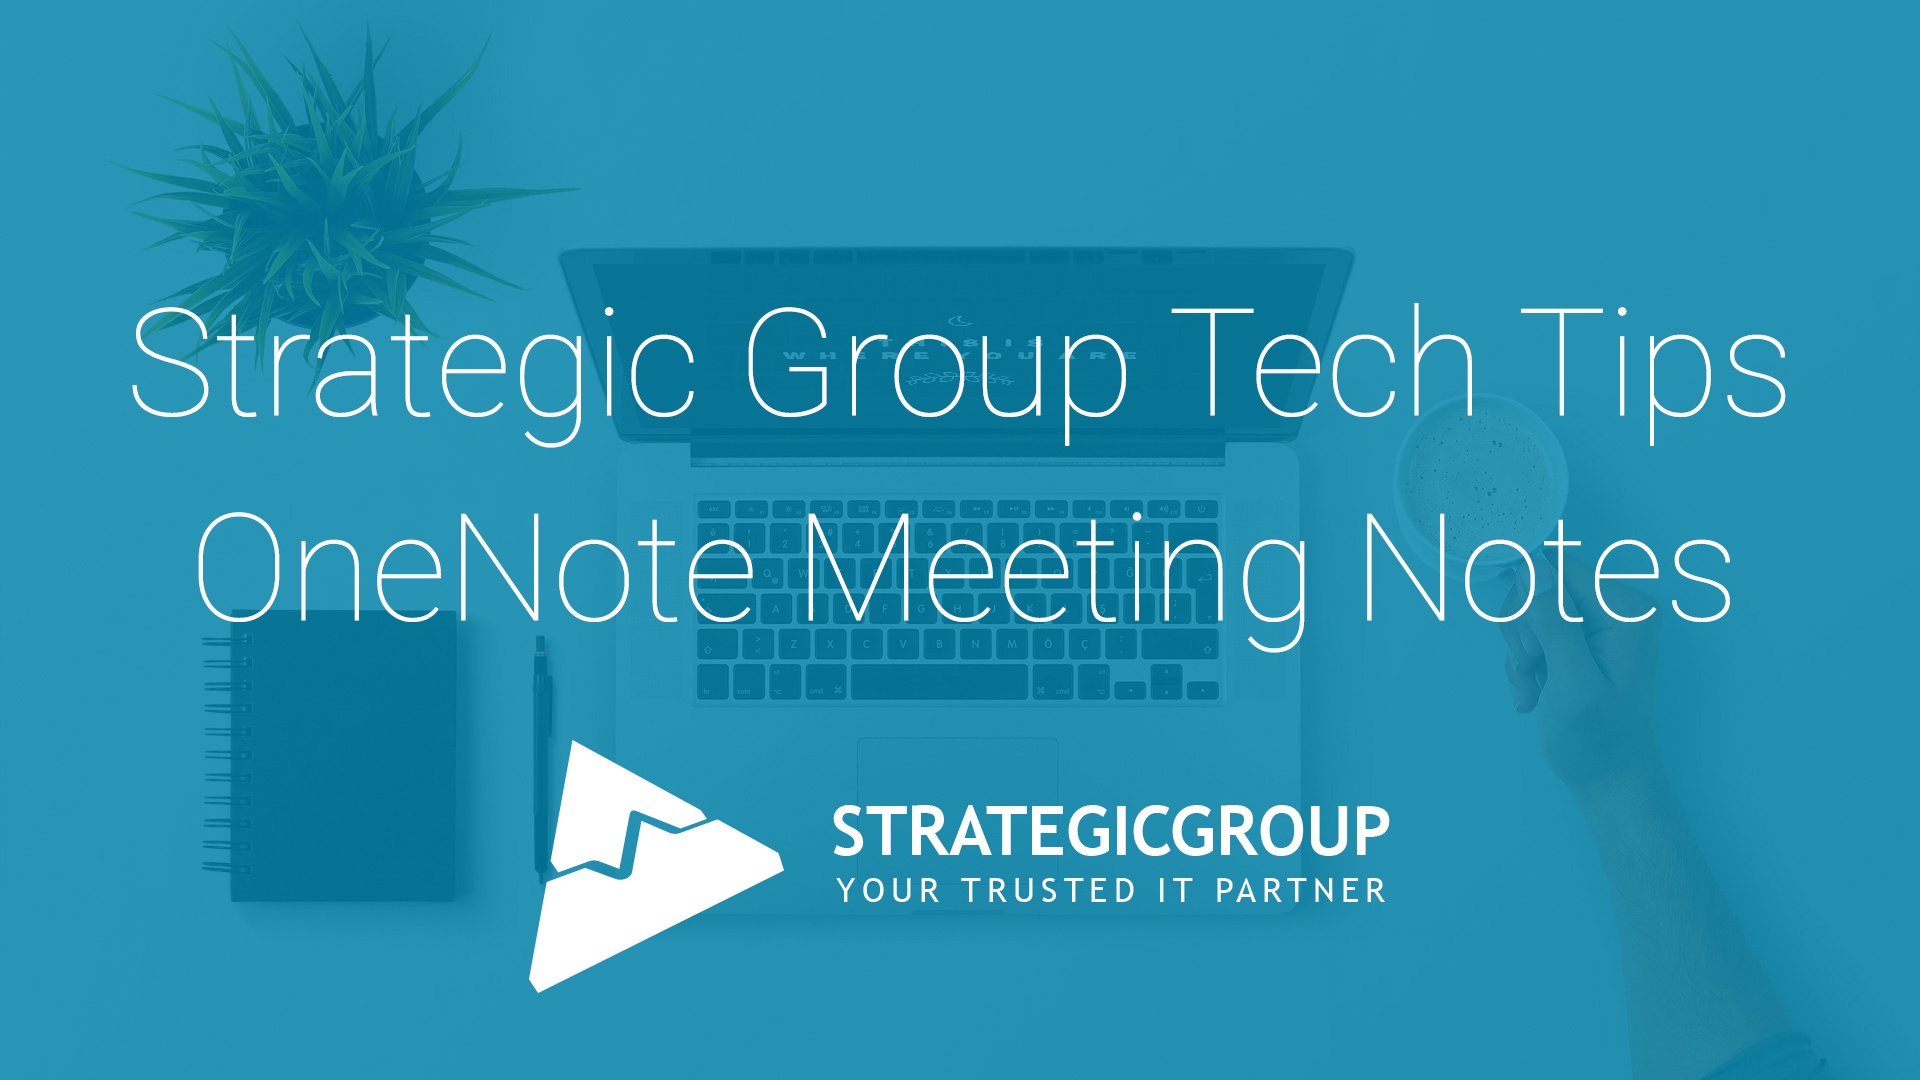 Strategic Group Tech Tips - OneNote Meetings